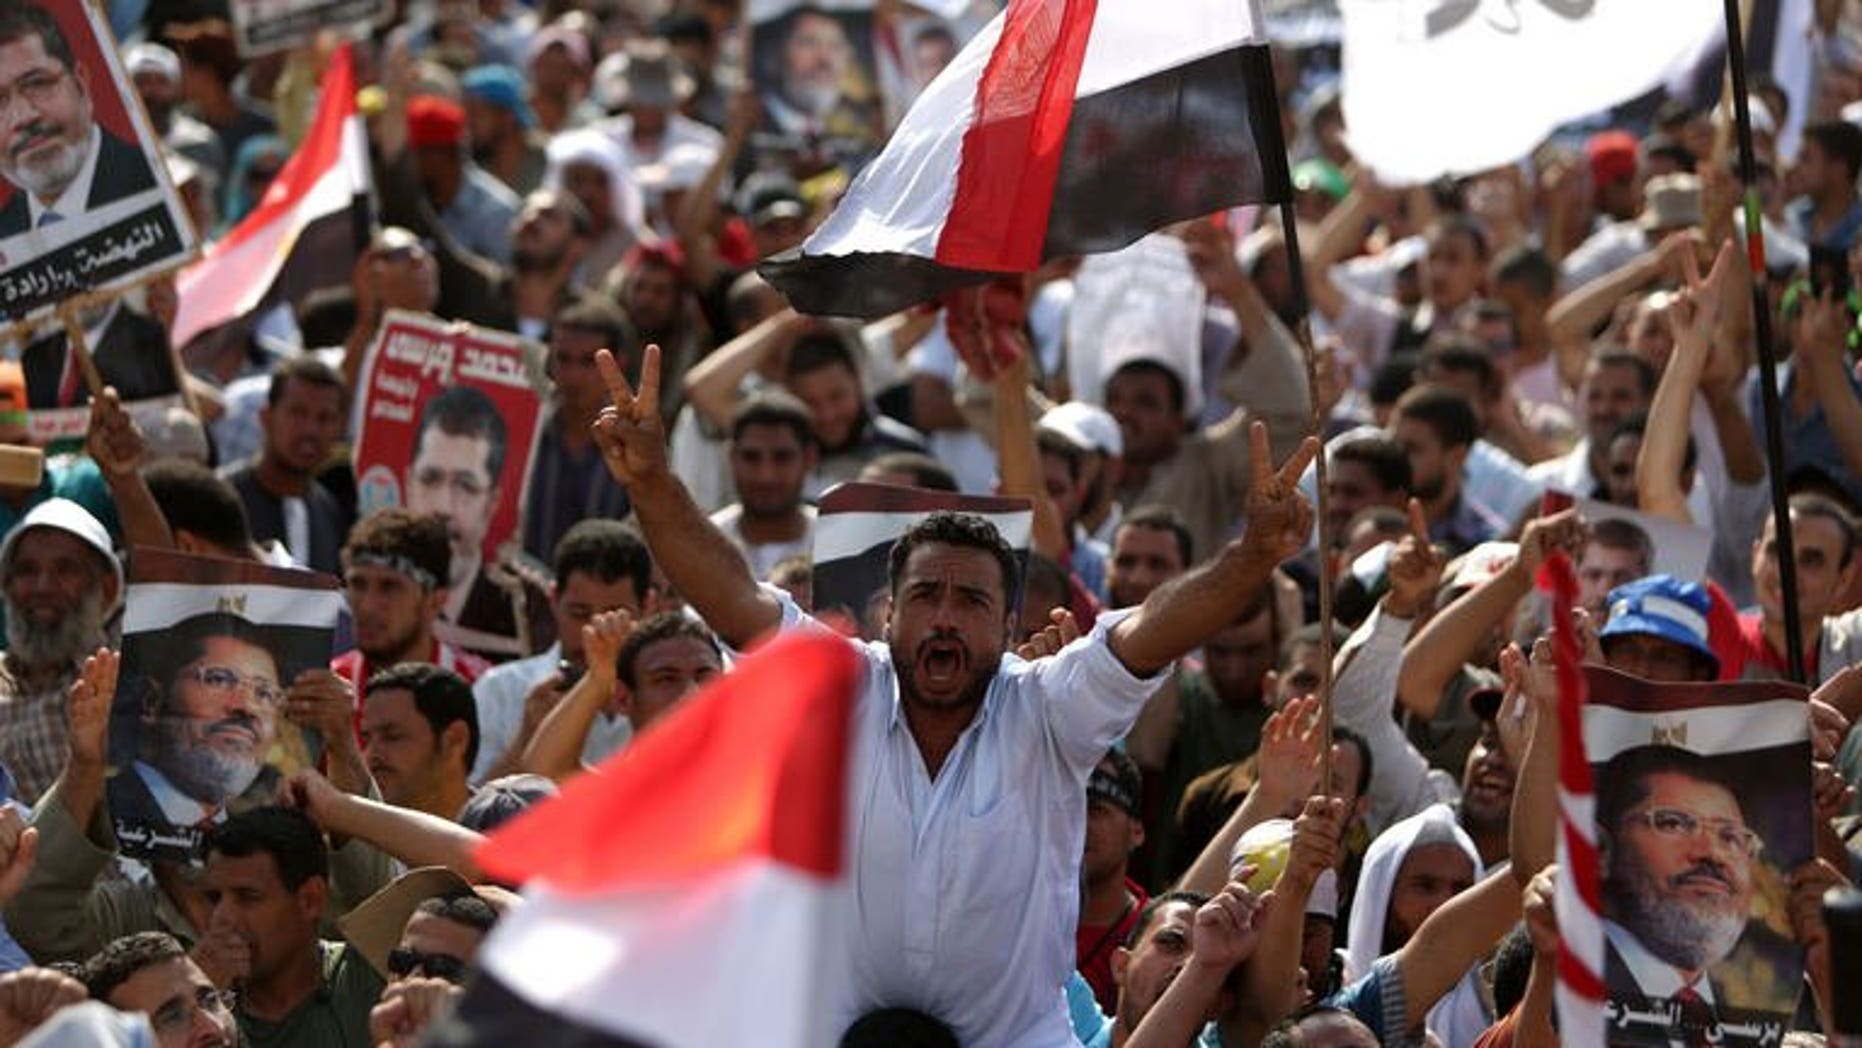 """Egyptian supporters of deposed president Mohamed Morsi shout slogans during a rally outside Cairo's Rabaa al-Adawiya mosque on July 8, 2013. Morsi's Muslim Brotherhood, which has led demonstrations against Wednesday's overthrow of the Islamist leader, called for an """"uprising,"""" saying troops and police """"massacred"""" its supporters during dawn prayers in Cairo Monday."""